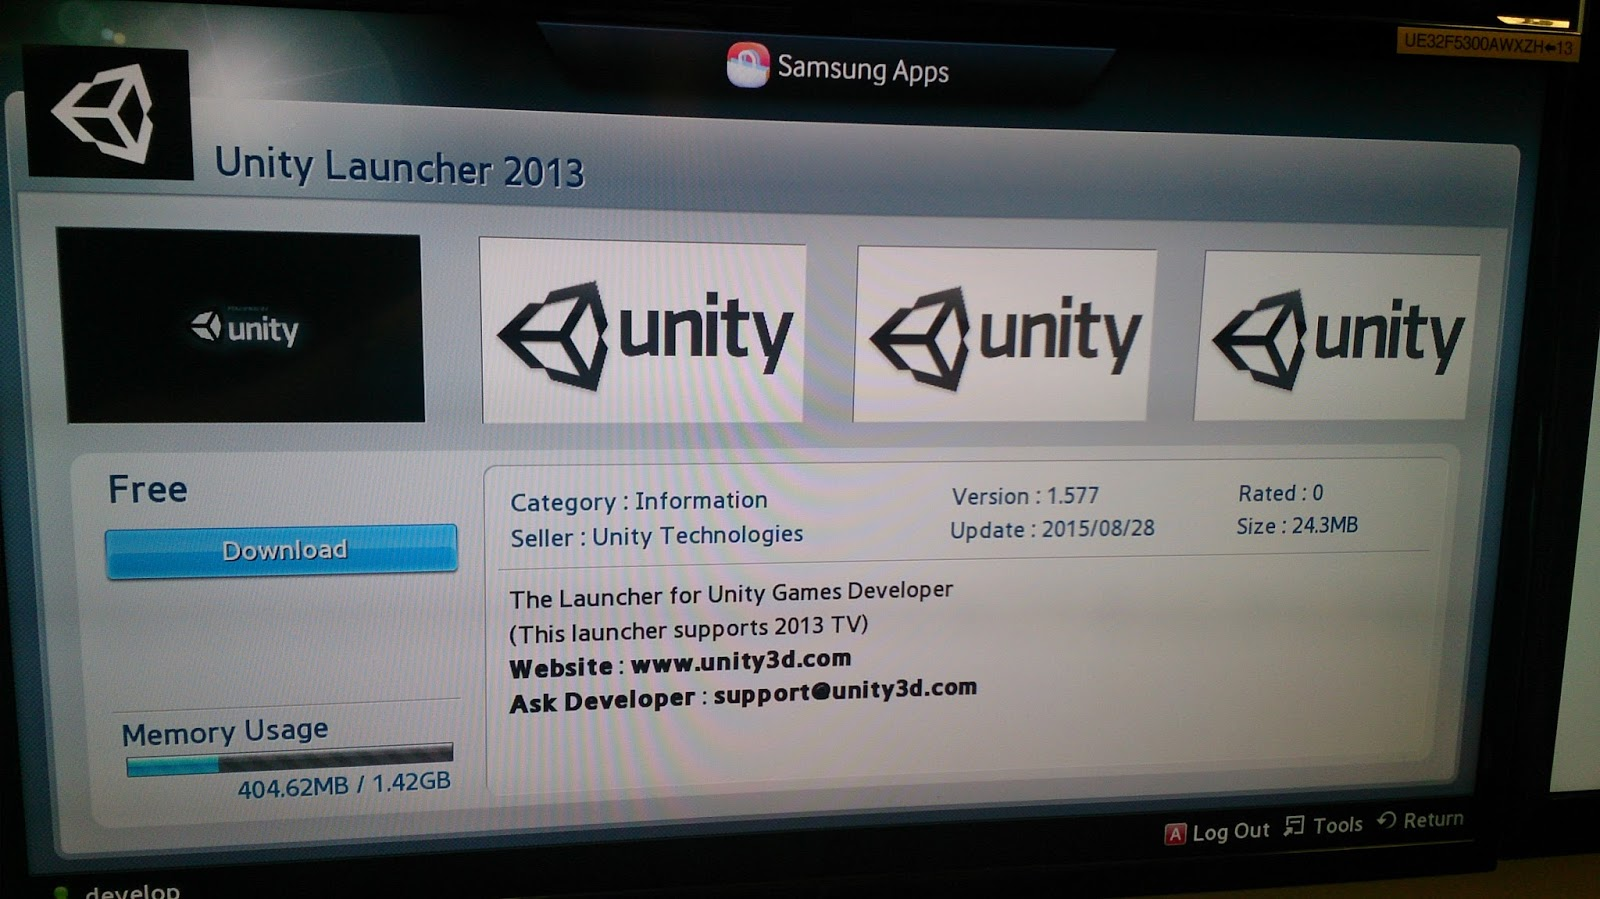 Unity for Dummies: Samsung SmartTV?